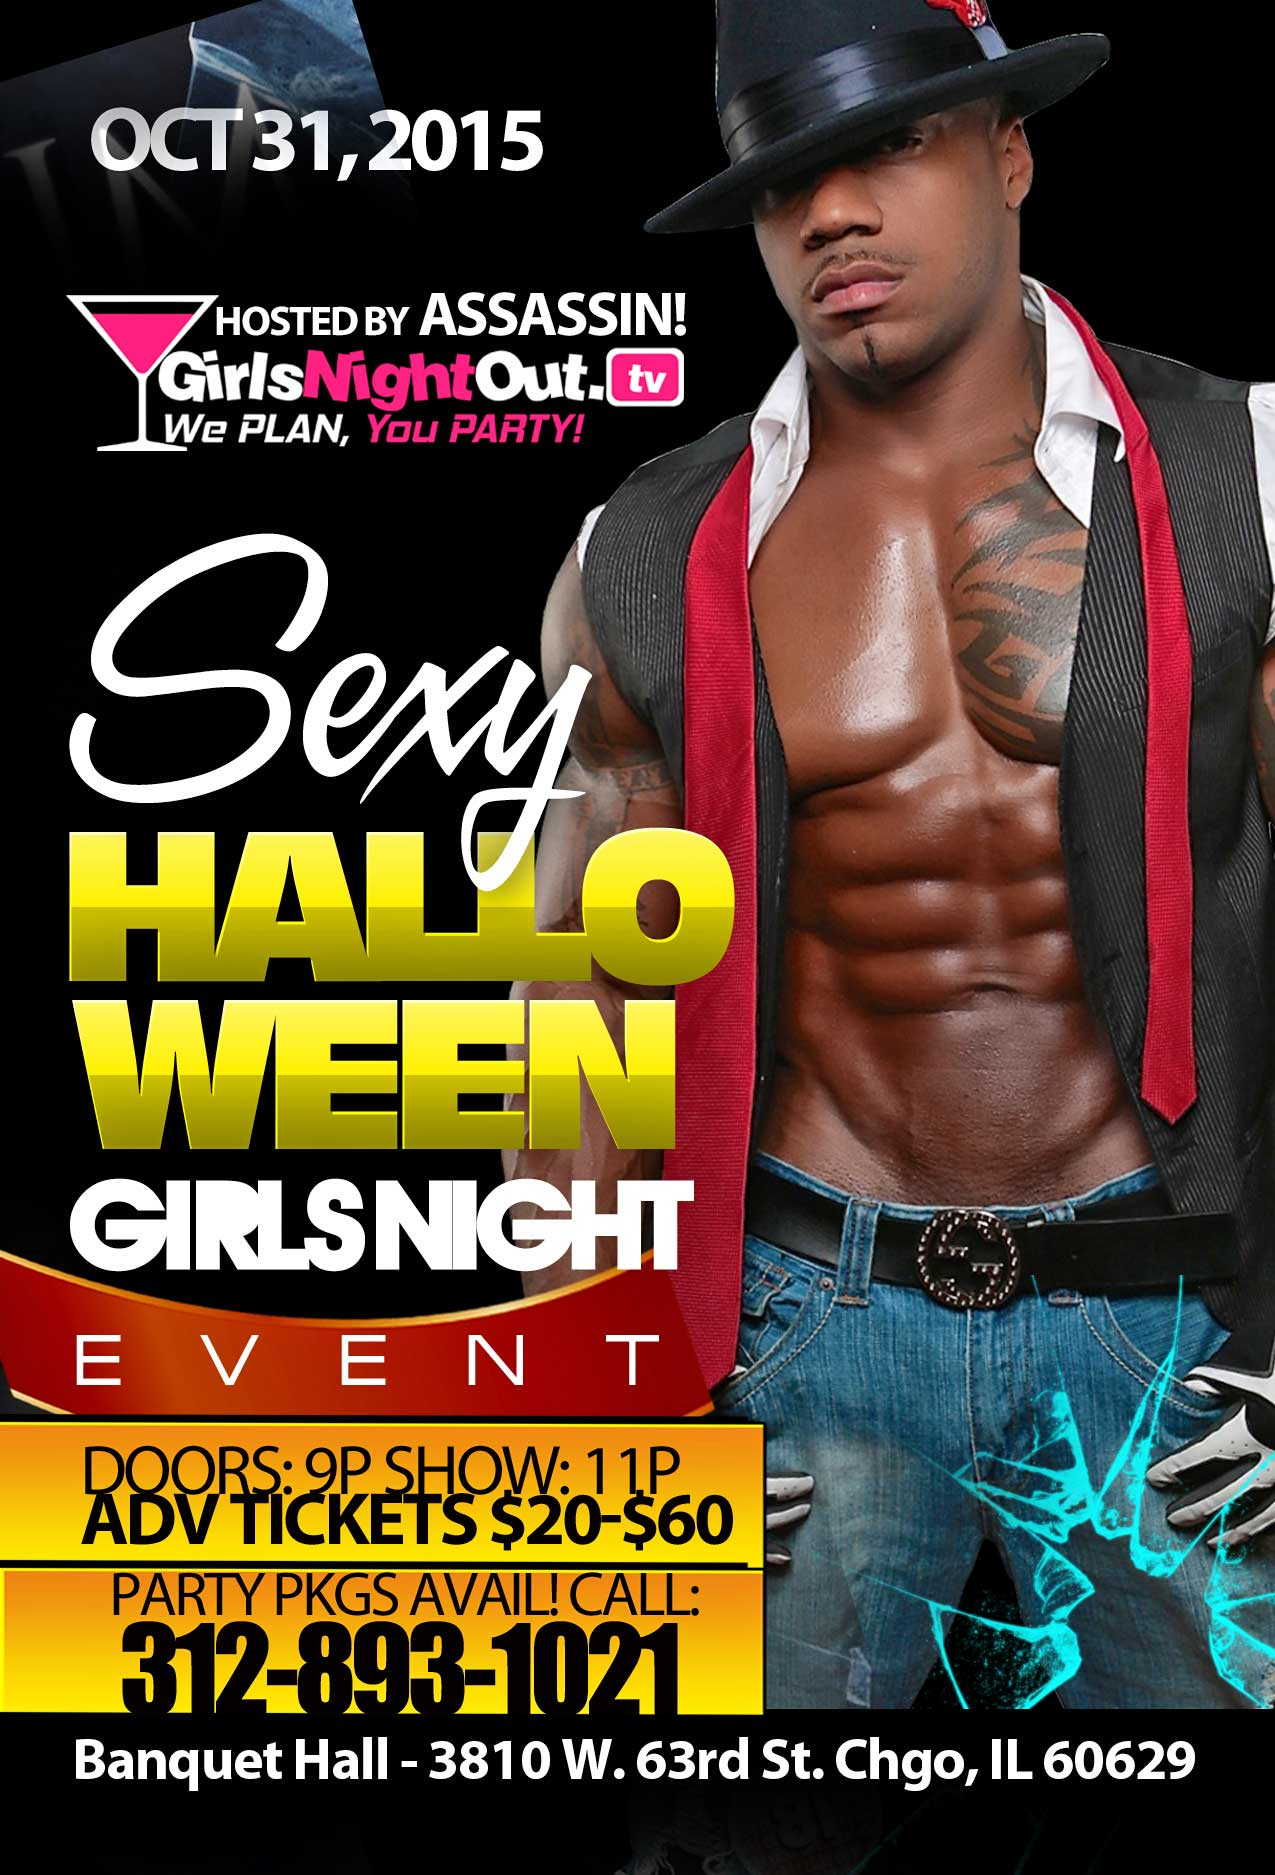 GirlsNightOut.tv | 312-893-1021